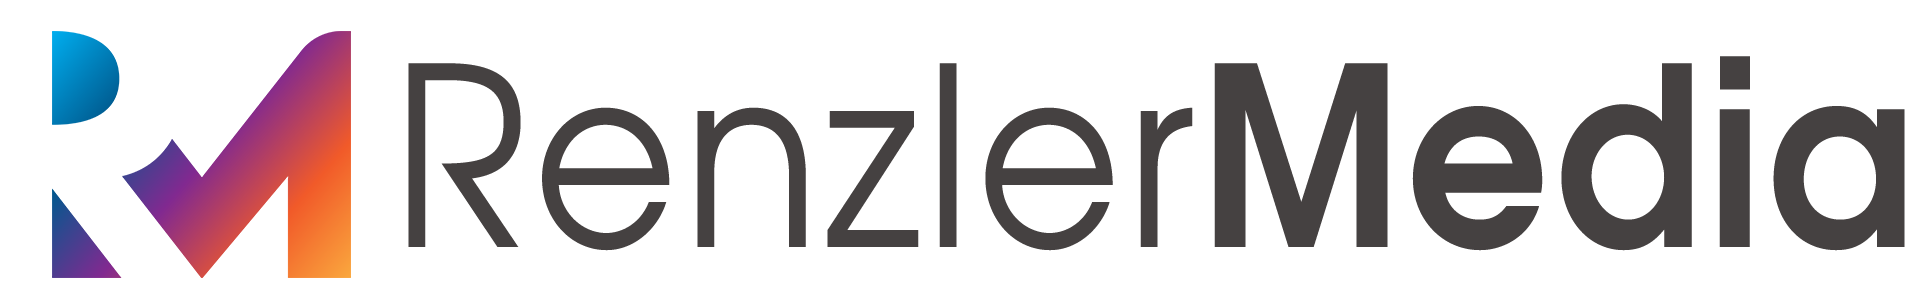 RenzlerMedia Color Logo White Text.png